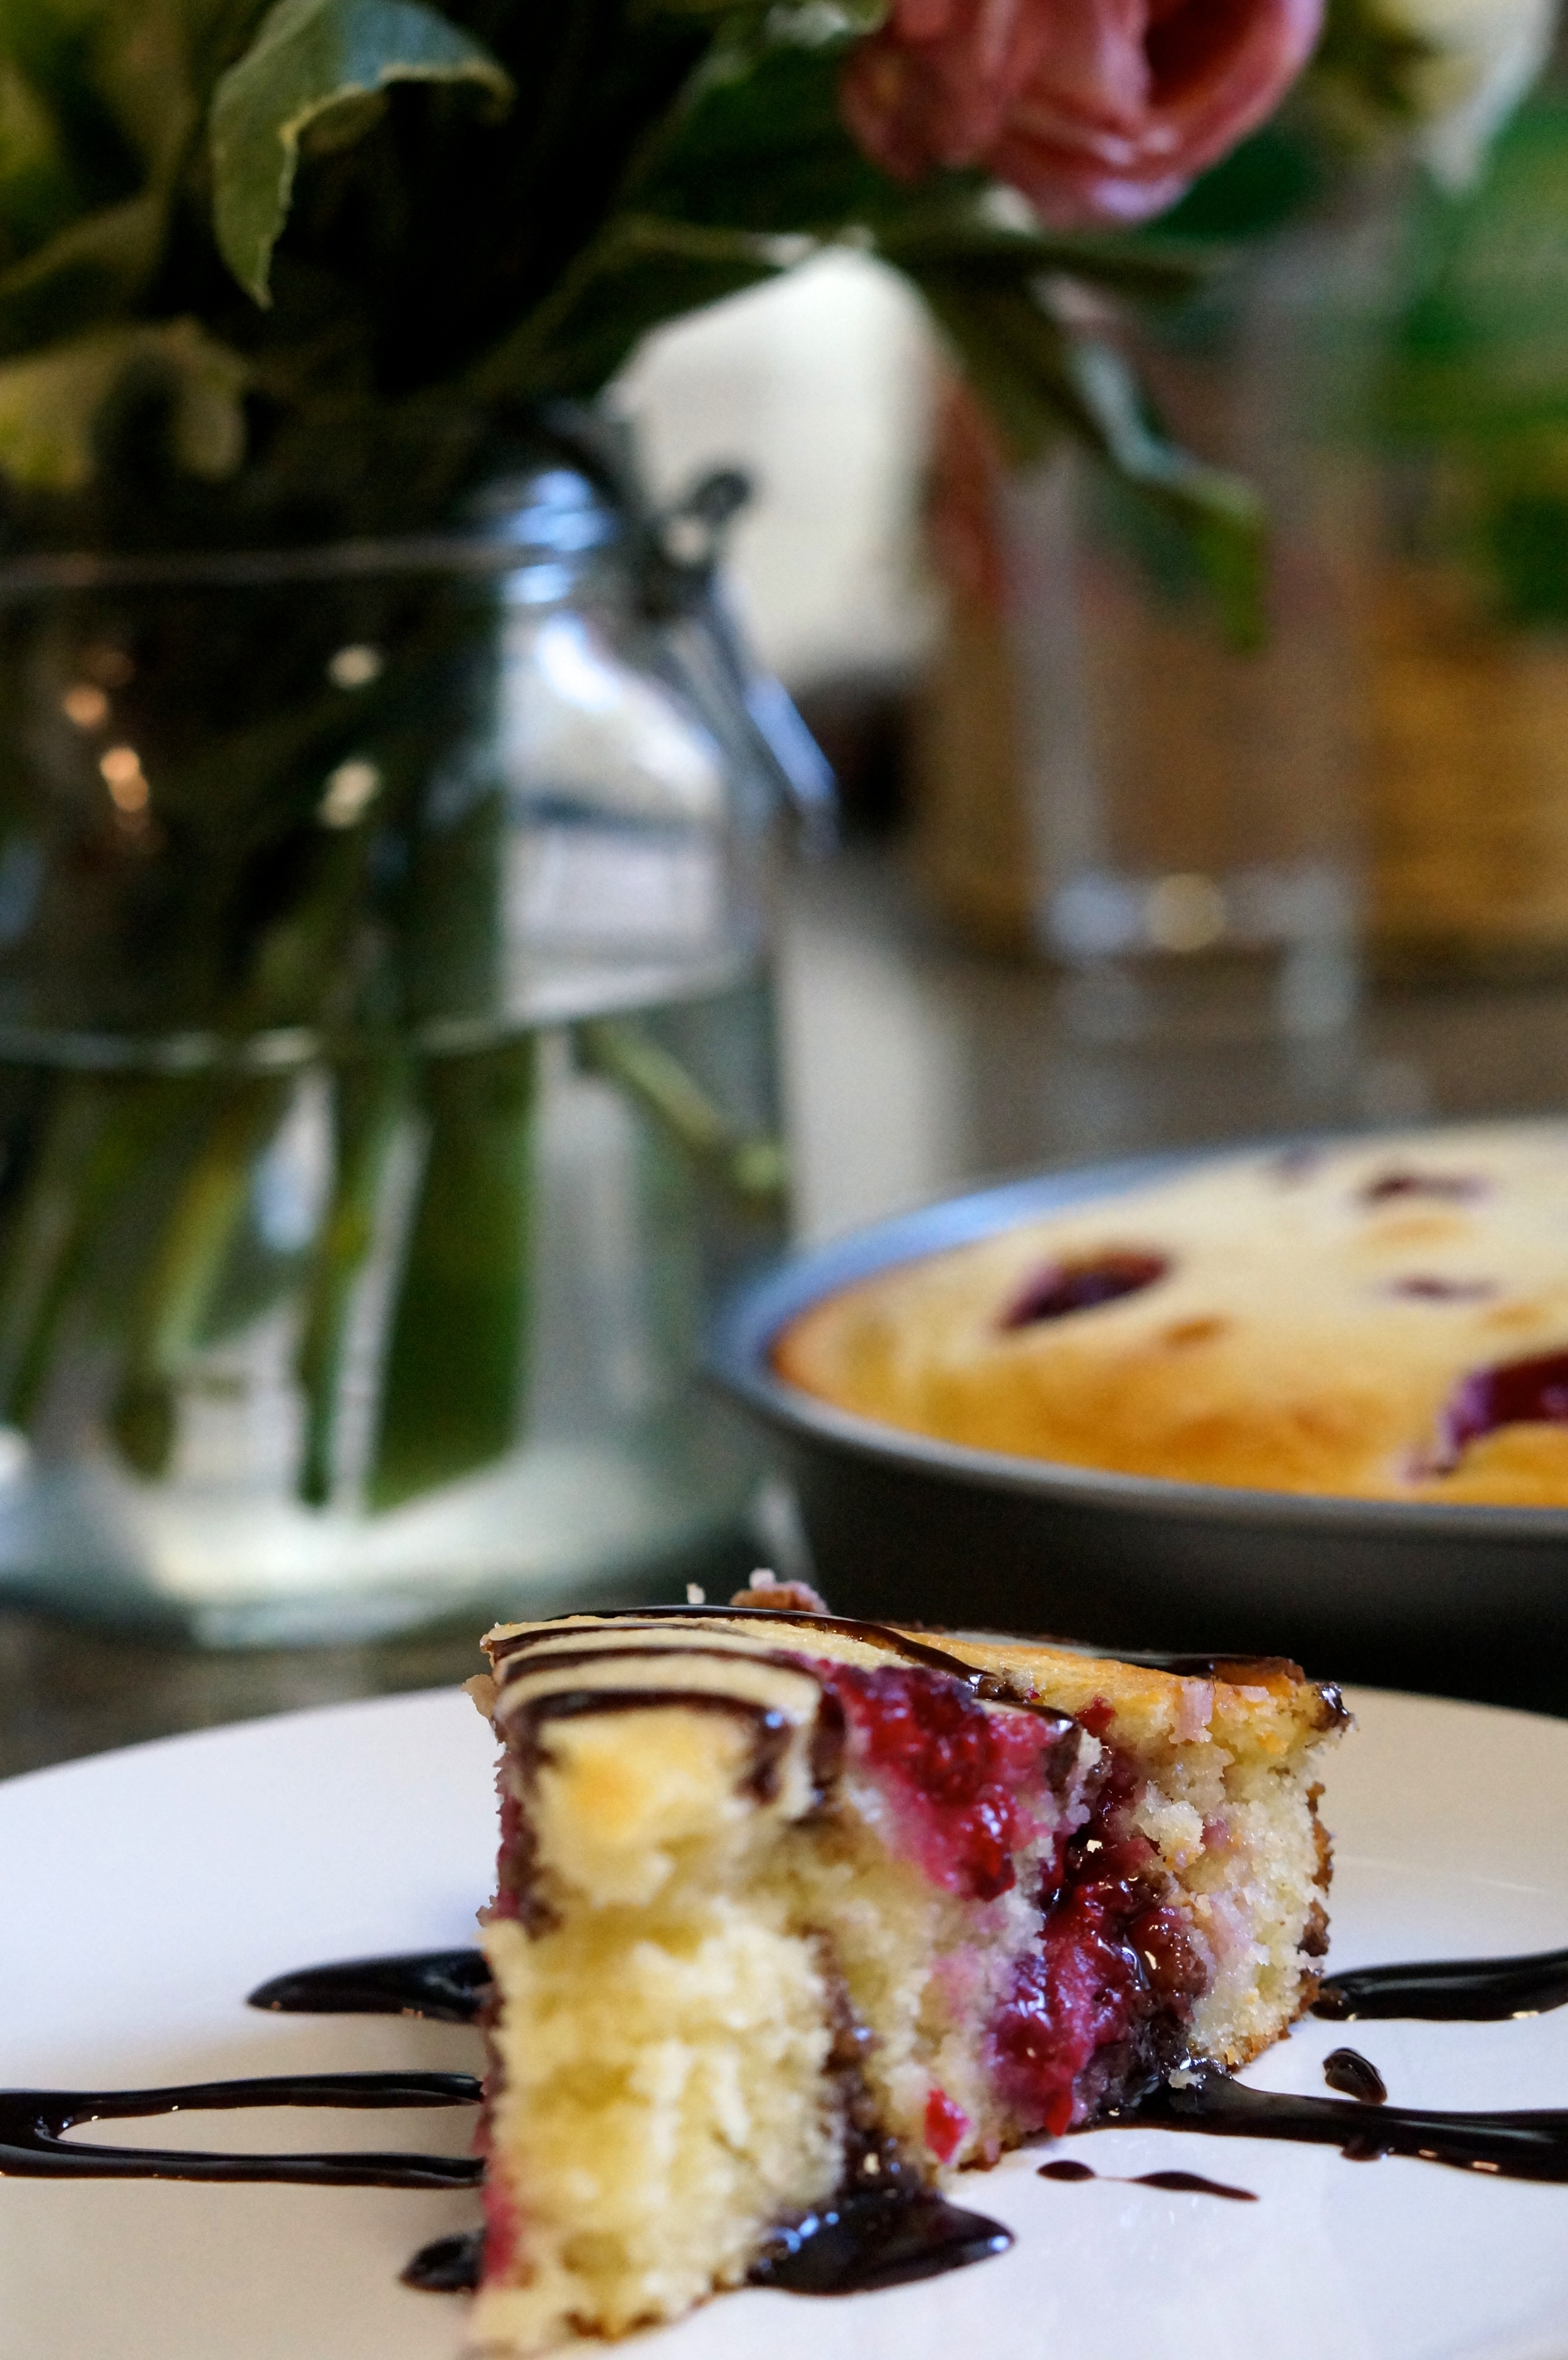 Raspberry-Ricotta Cake with Chocolate Drizzle